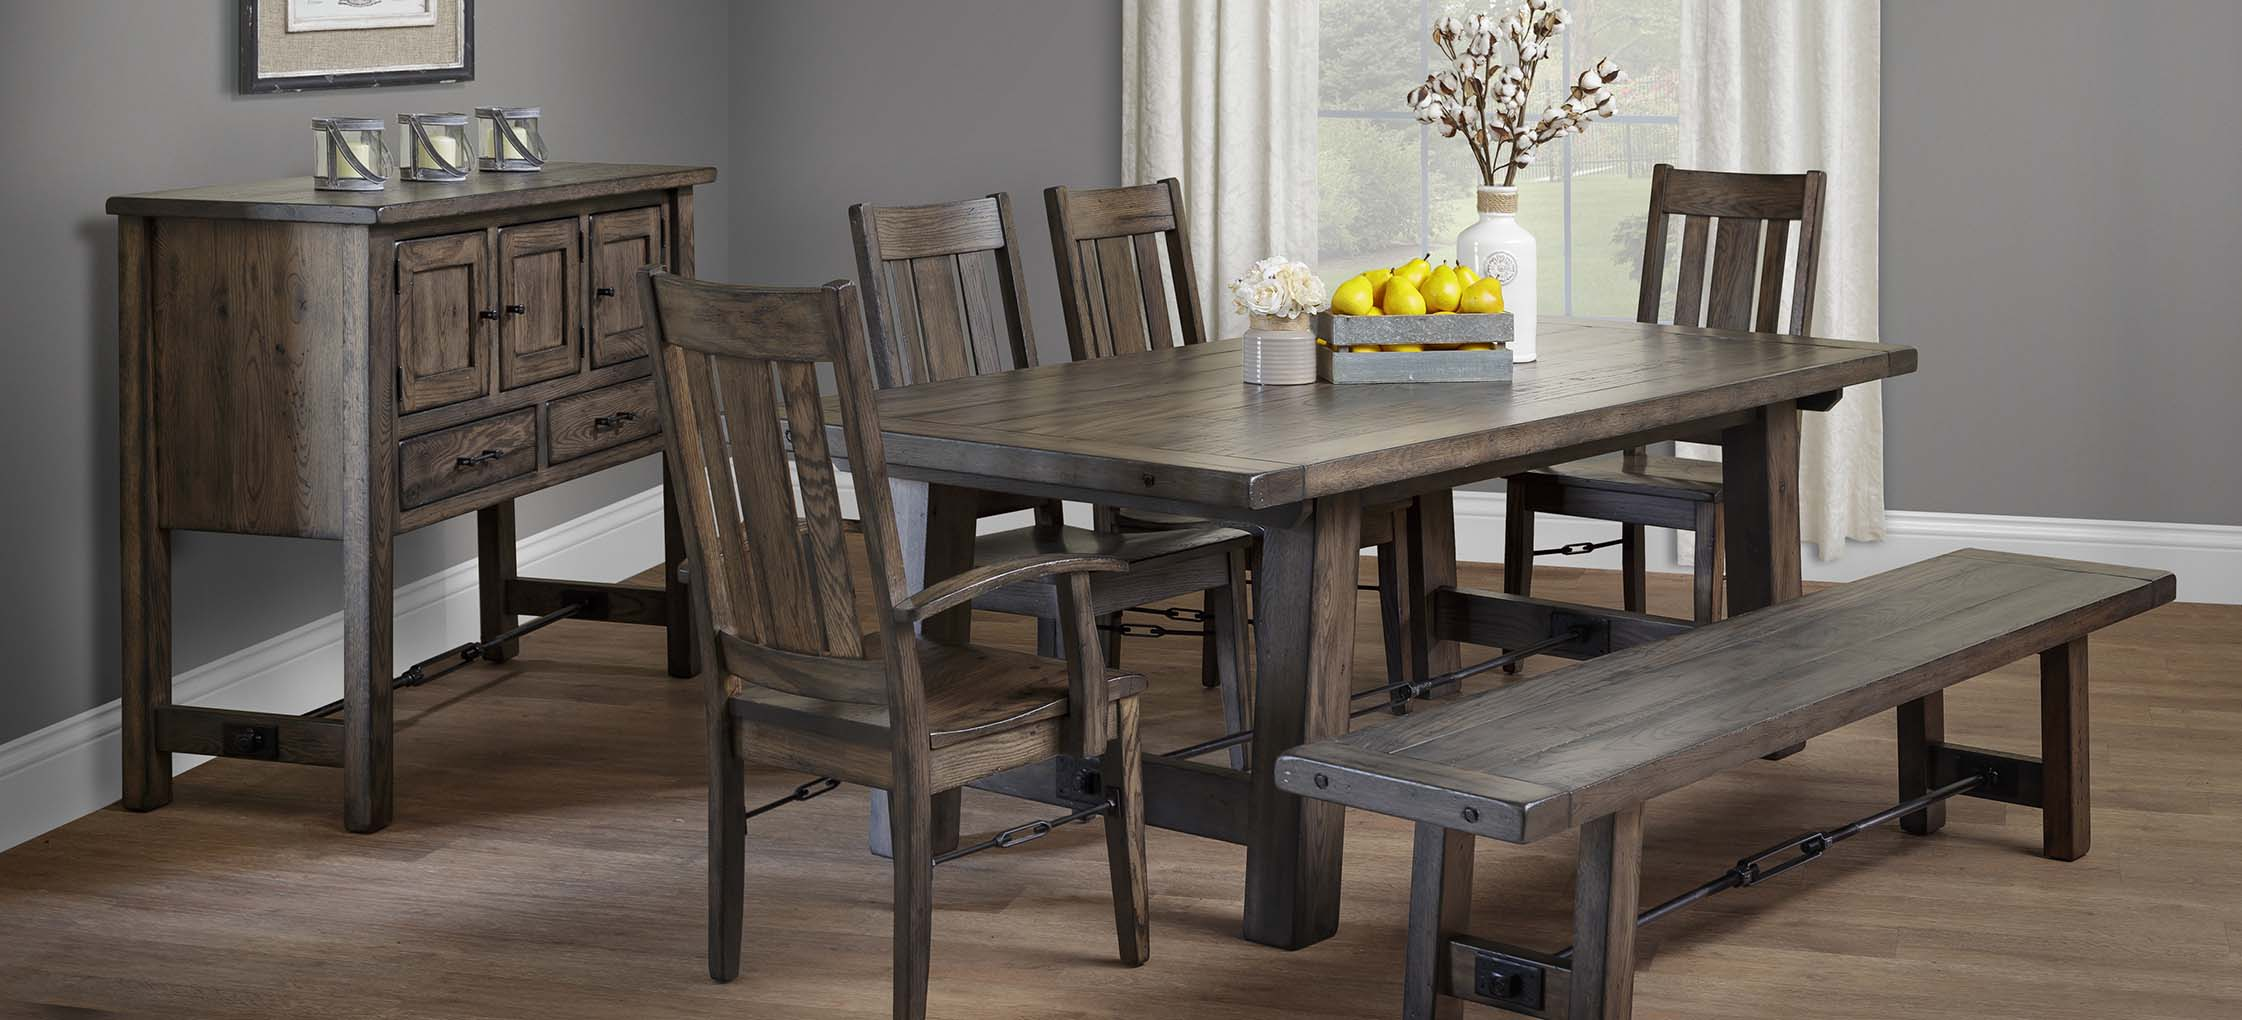 Snyders Furniture Lancaster County PA Amish Furniture